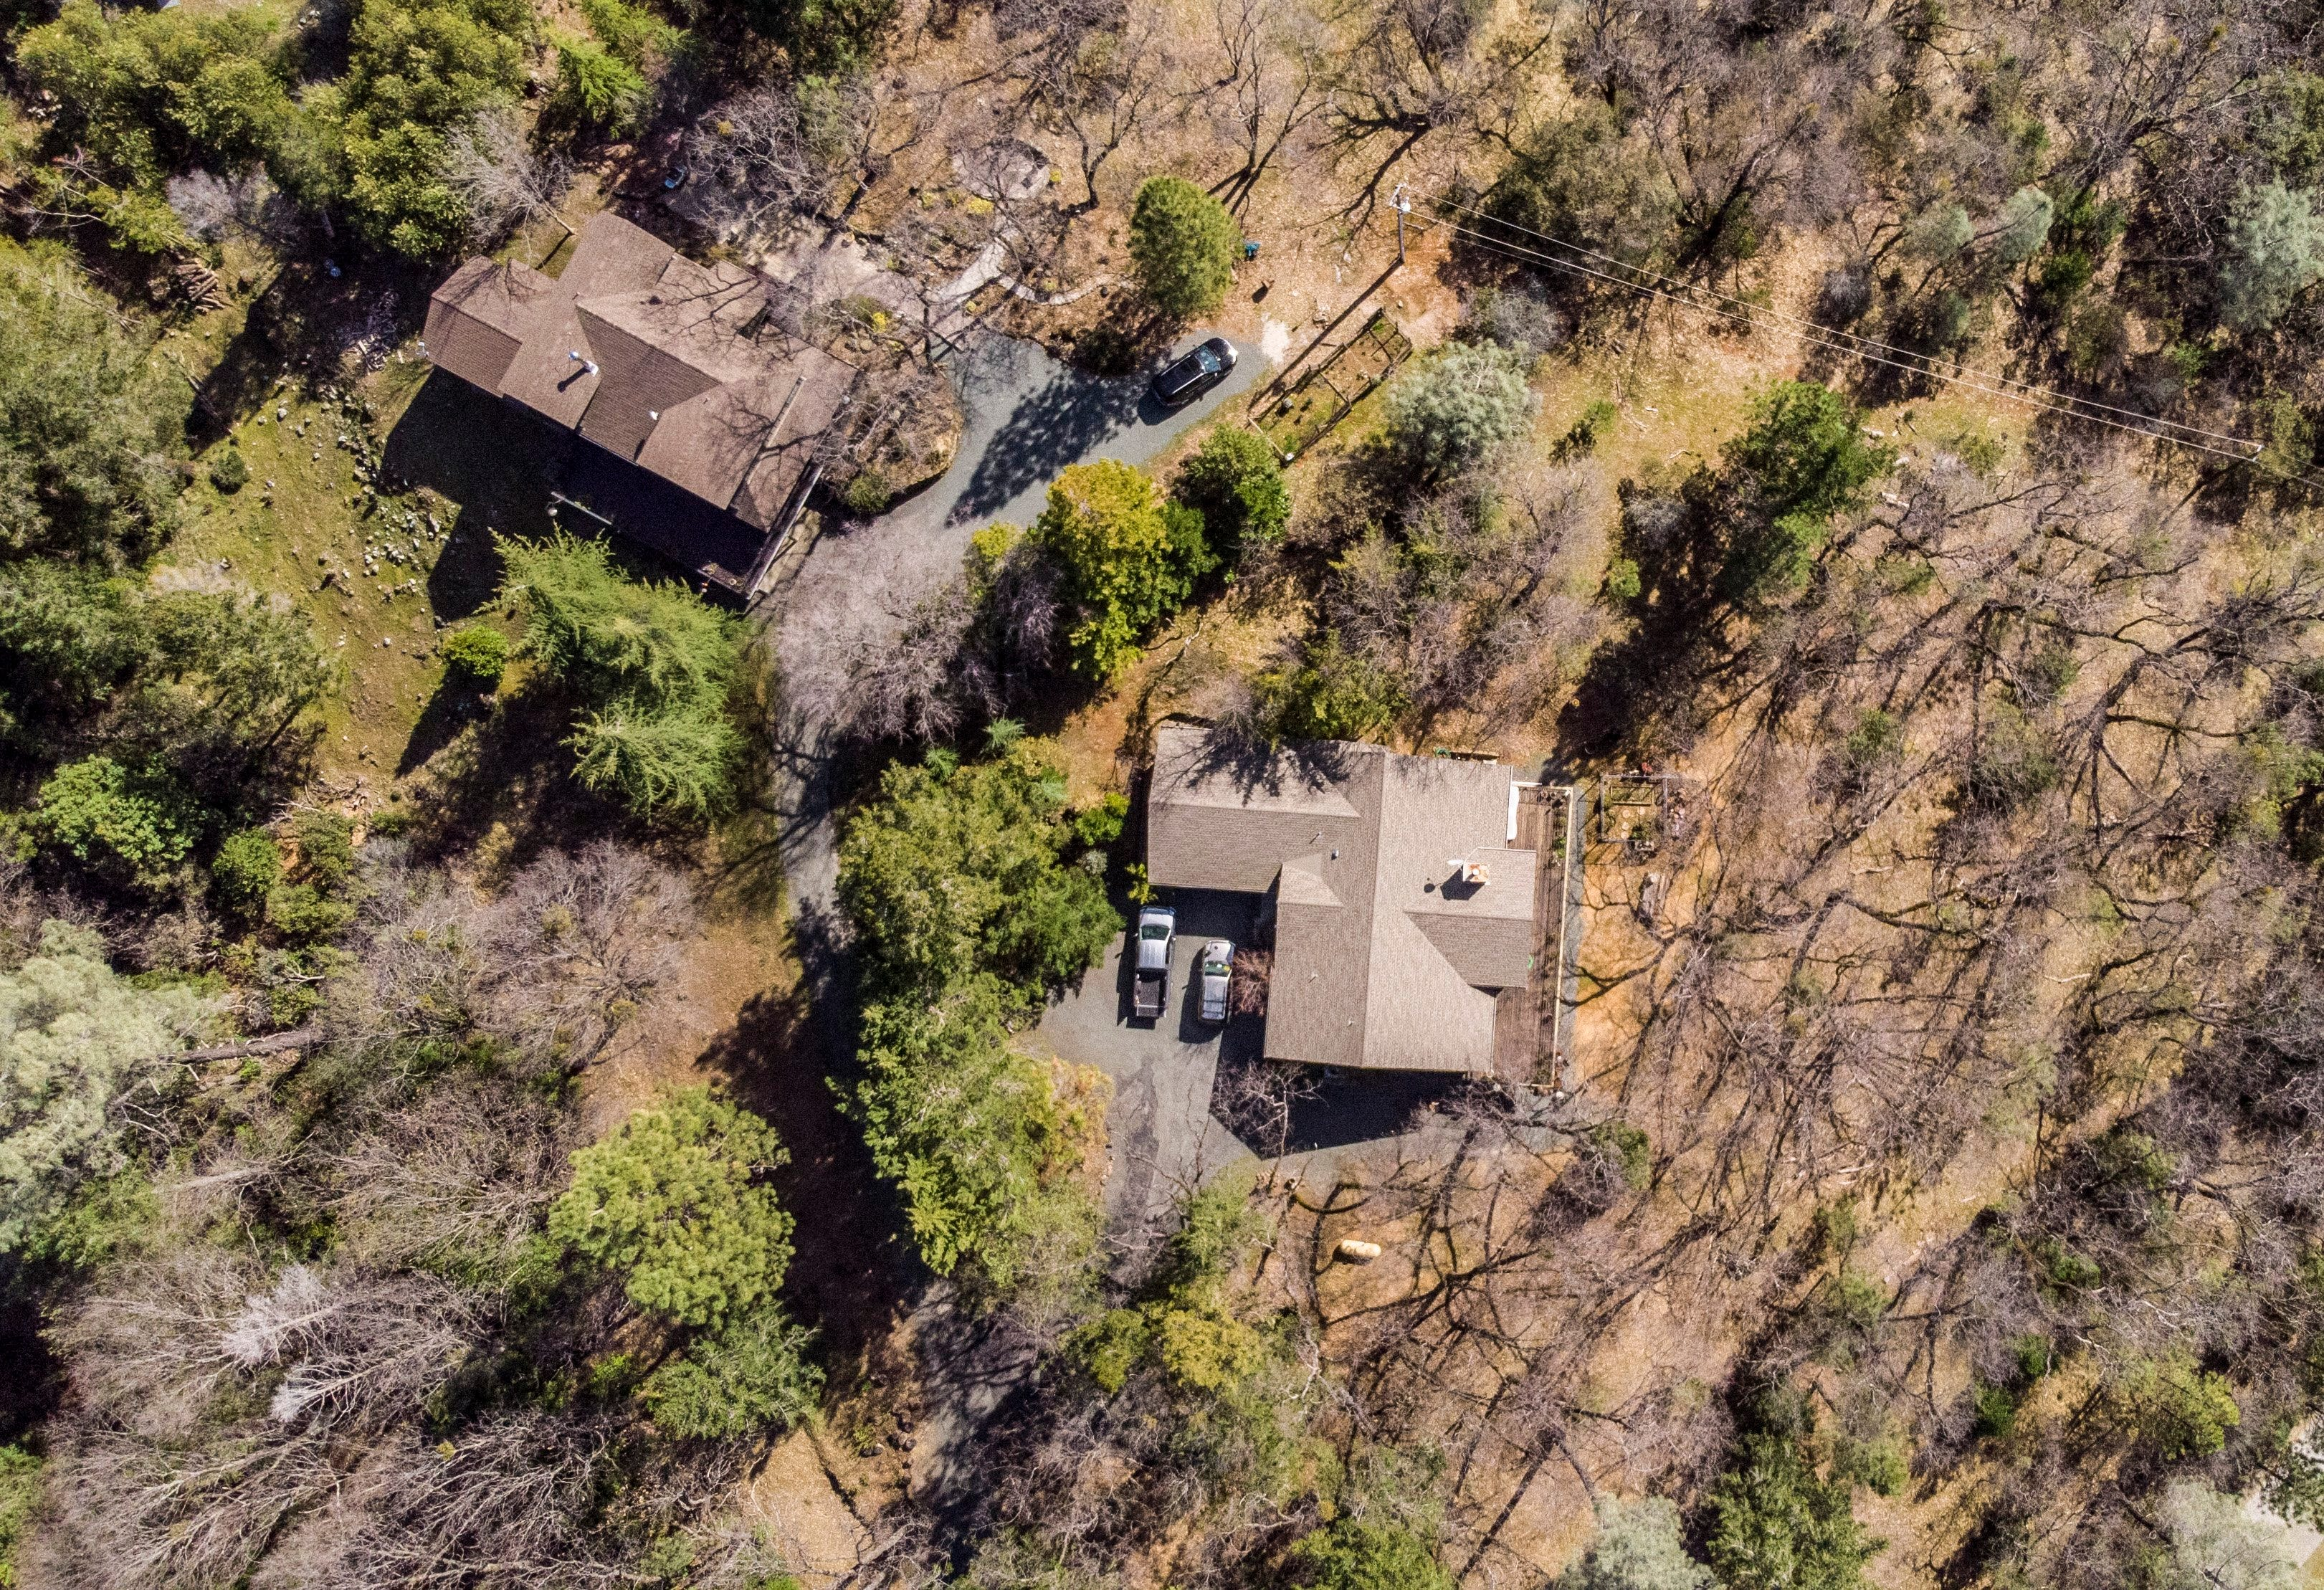 Gene Mapa lost his Paradise home in the Camp Fire. Now he lives in a house in Colfax, which also has a high level of fire risk. He's had his house, right, inspected by the California Department of Forestry and maintains defensible space.